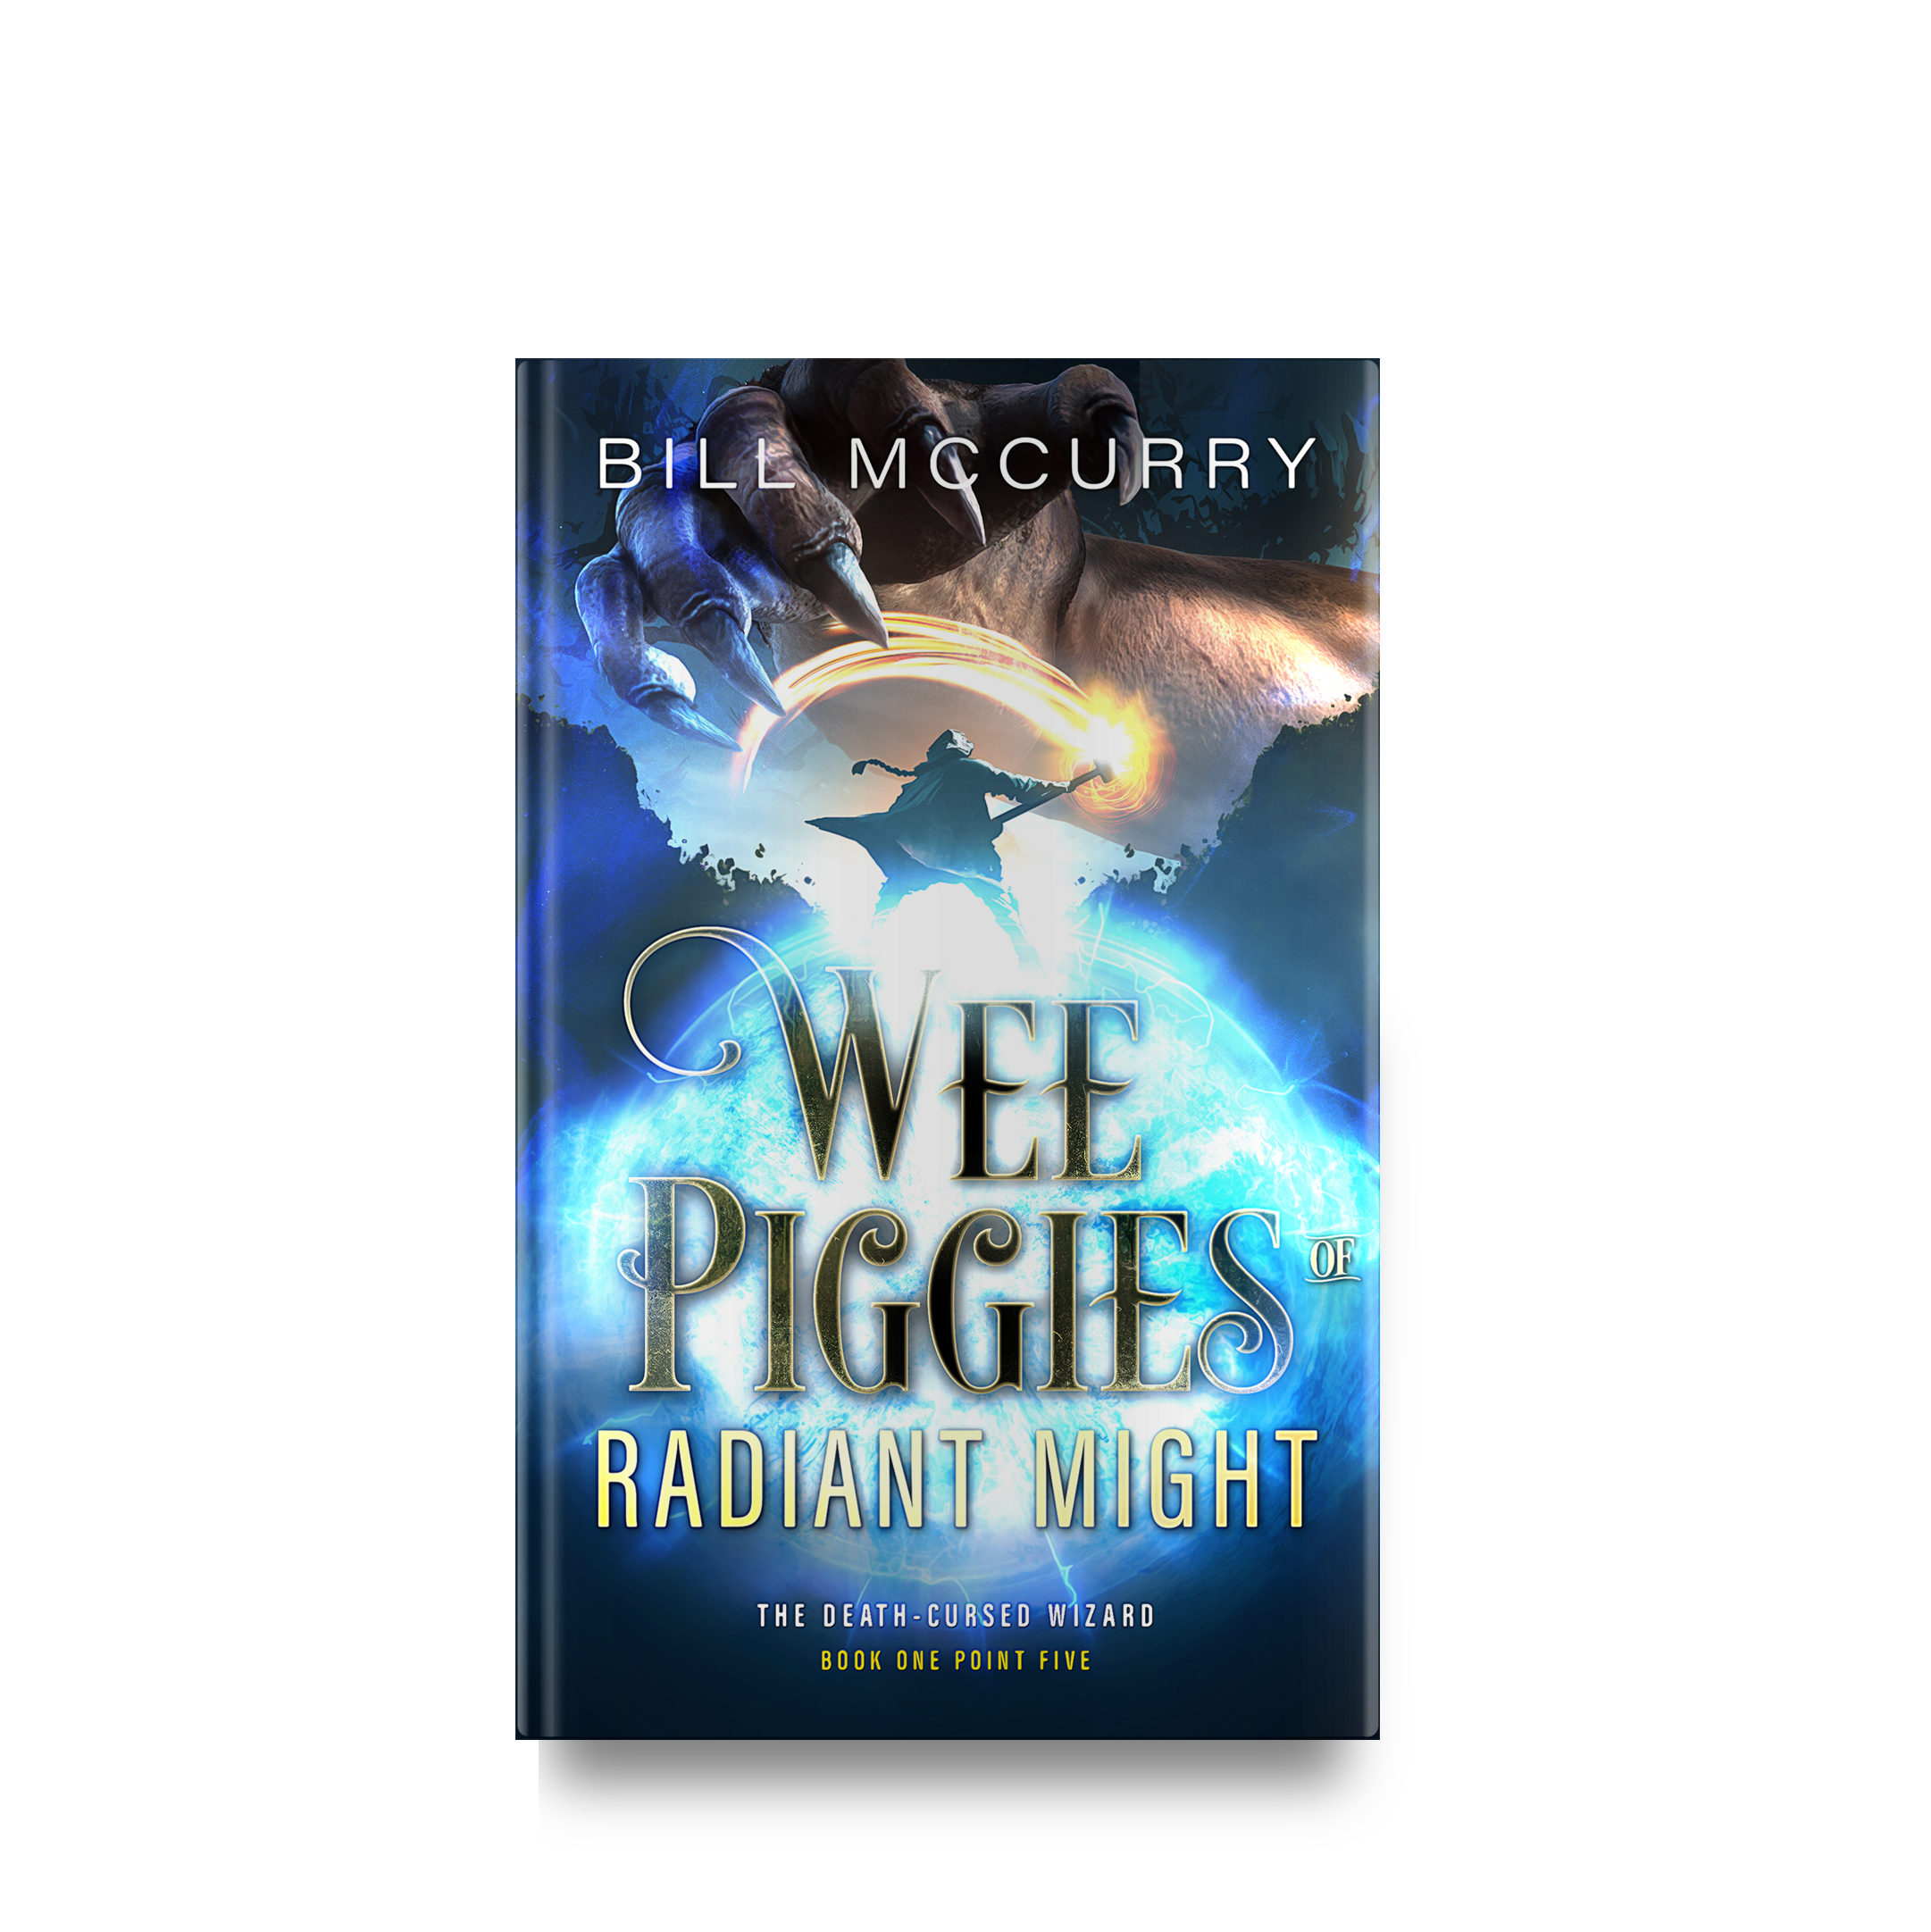 Bill McCurry's Wee Piggies of Radiant Might || Designed by TheThatchery.com